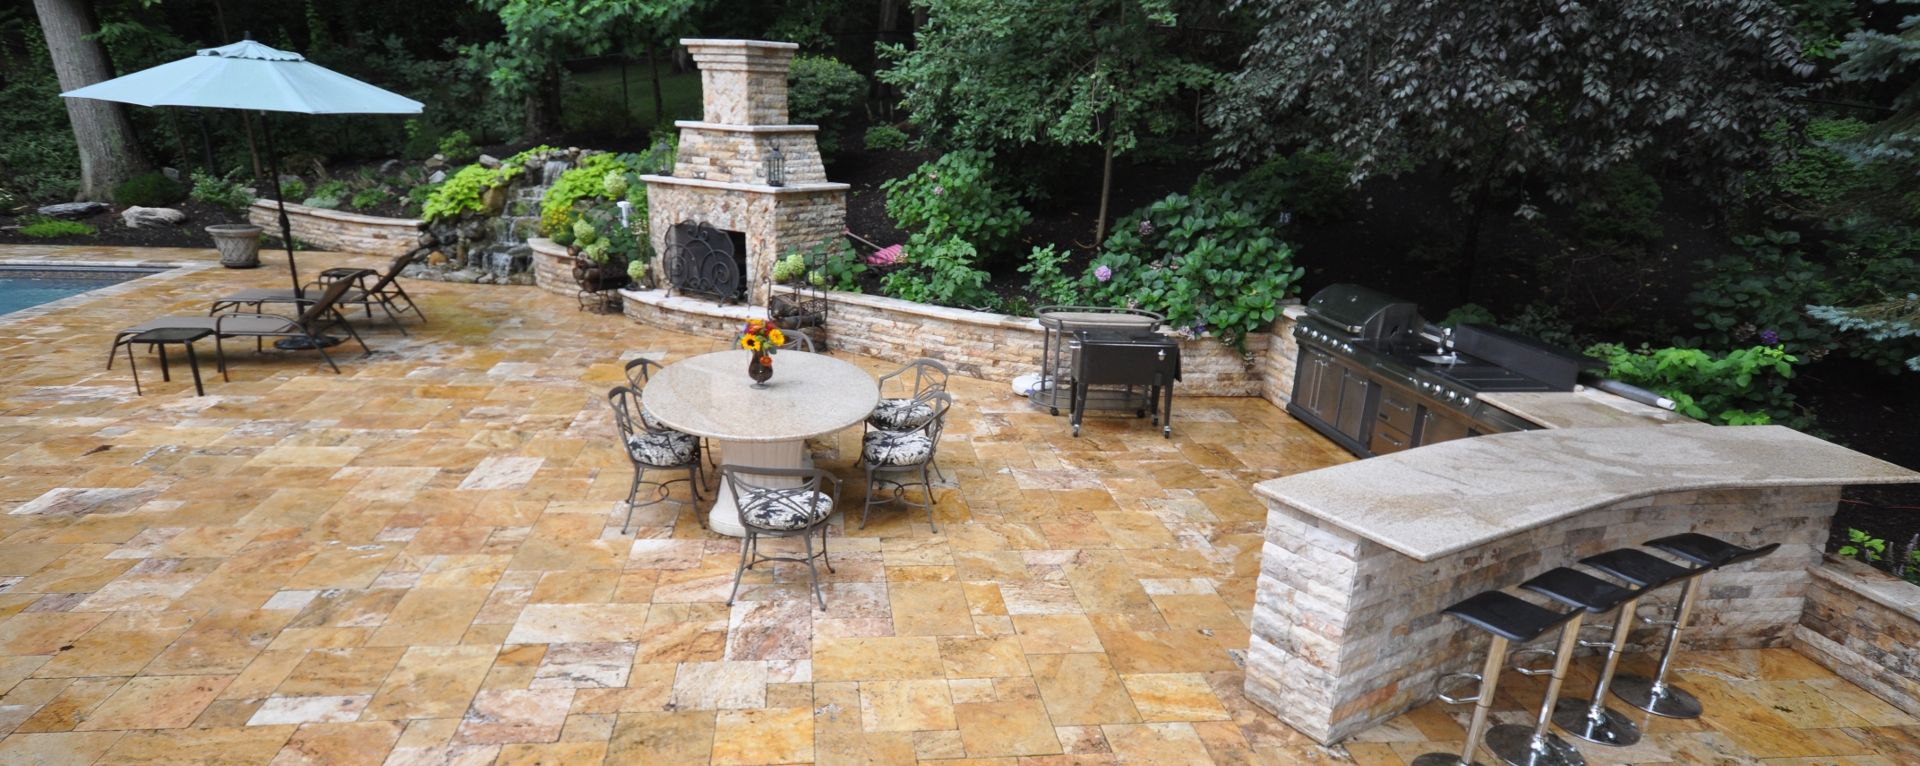 Amazing Paving Stone Select | Natural Stone Pavers | Tile | Veneer | Pool Coping |  Masonry Great Ideas